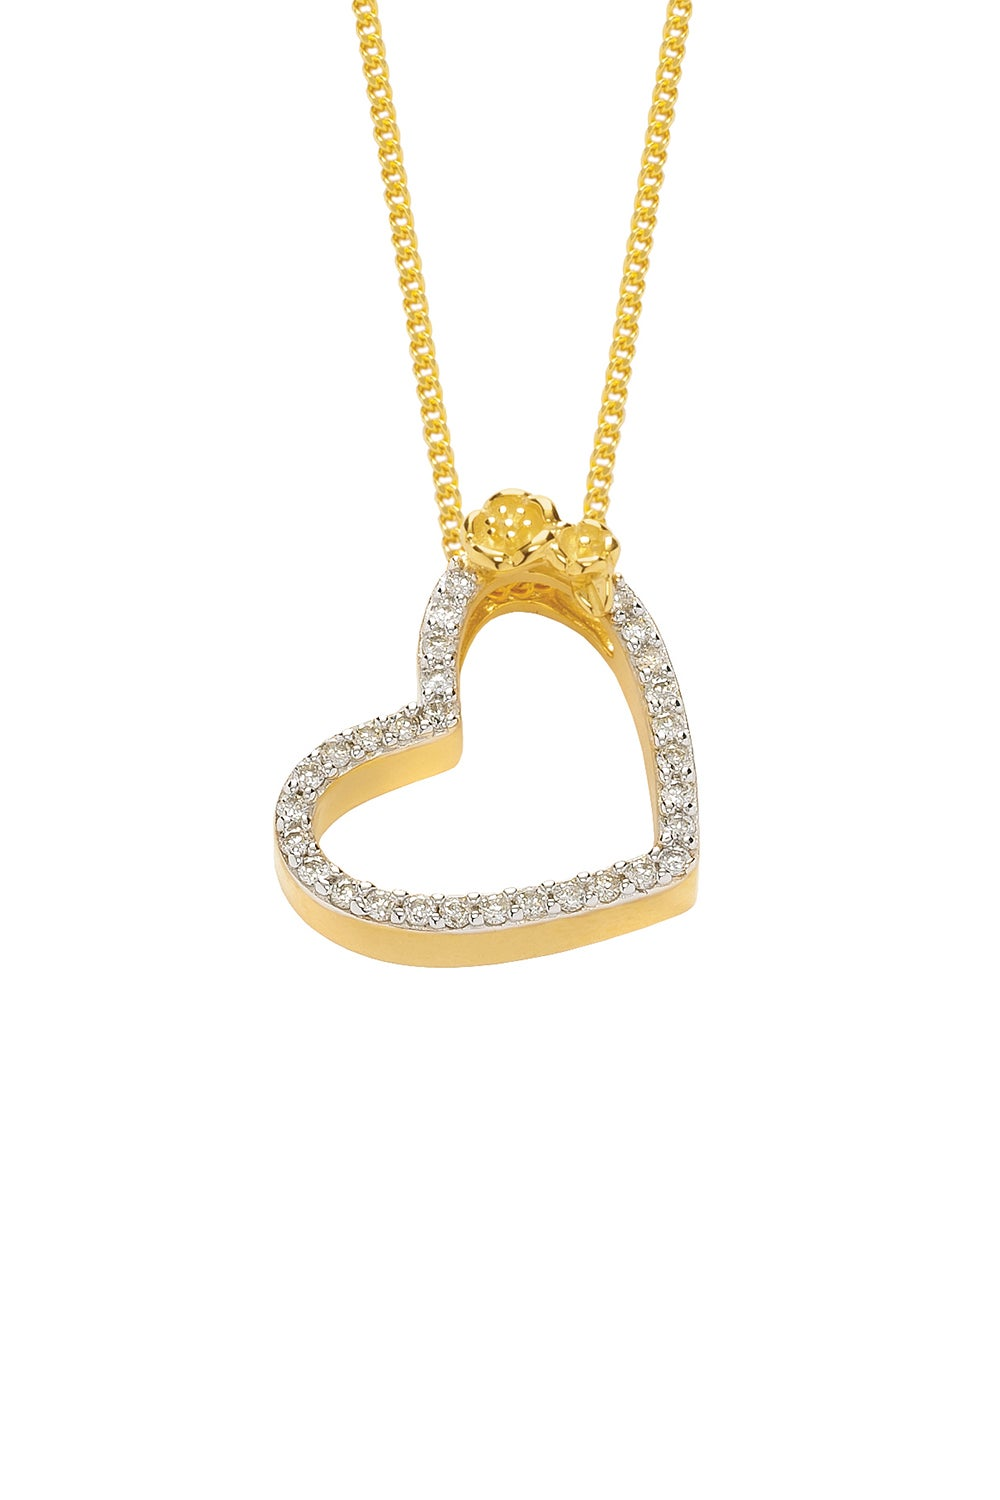 Diamond Botanical Heart Necklace, Gold, .25ct Diamond